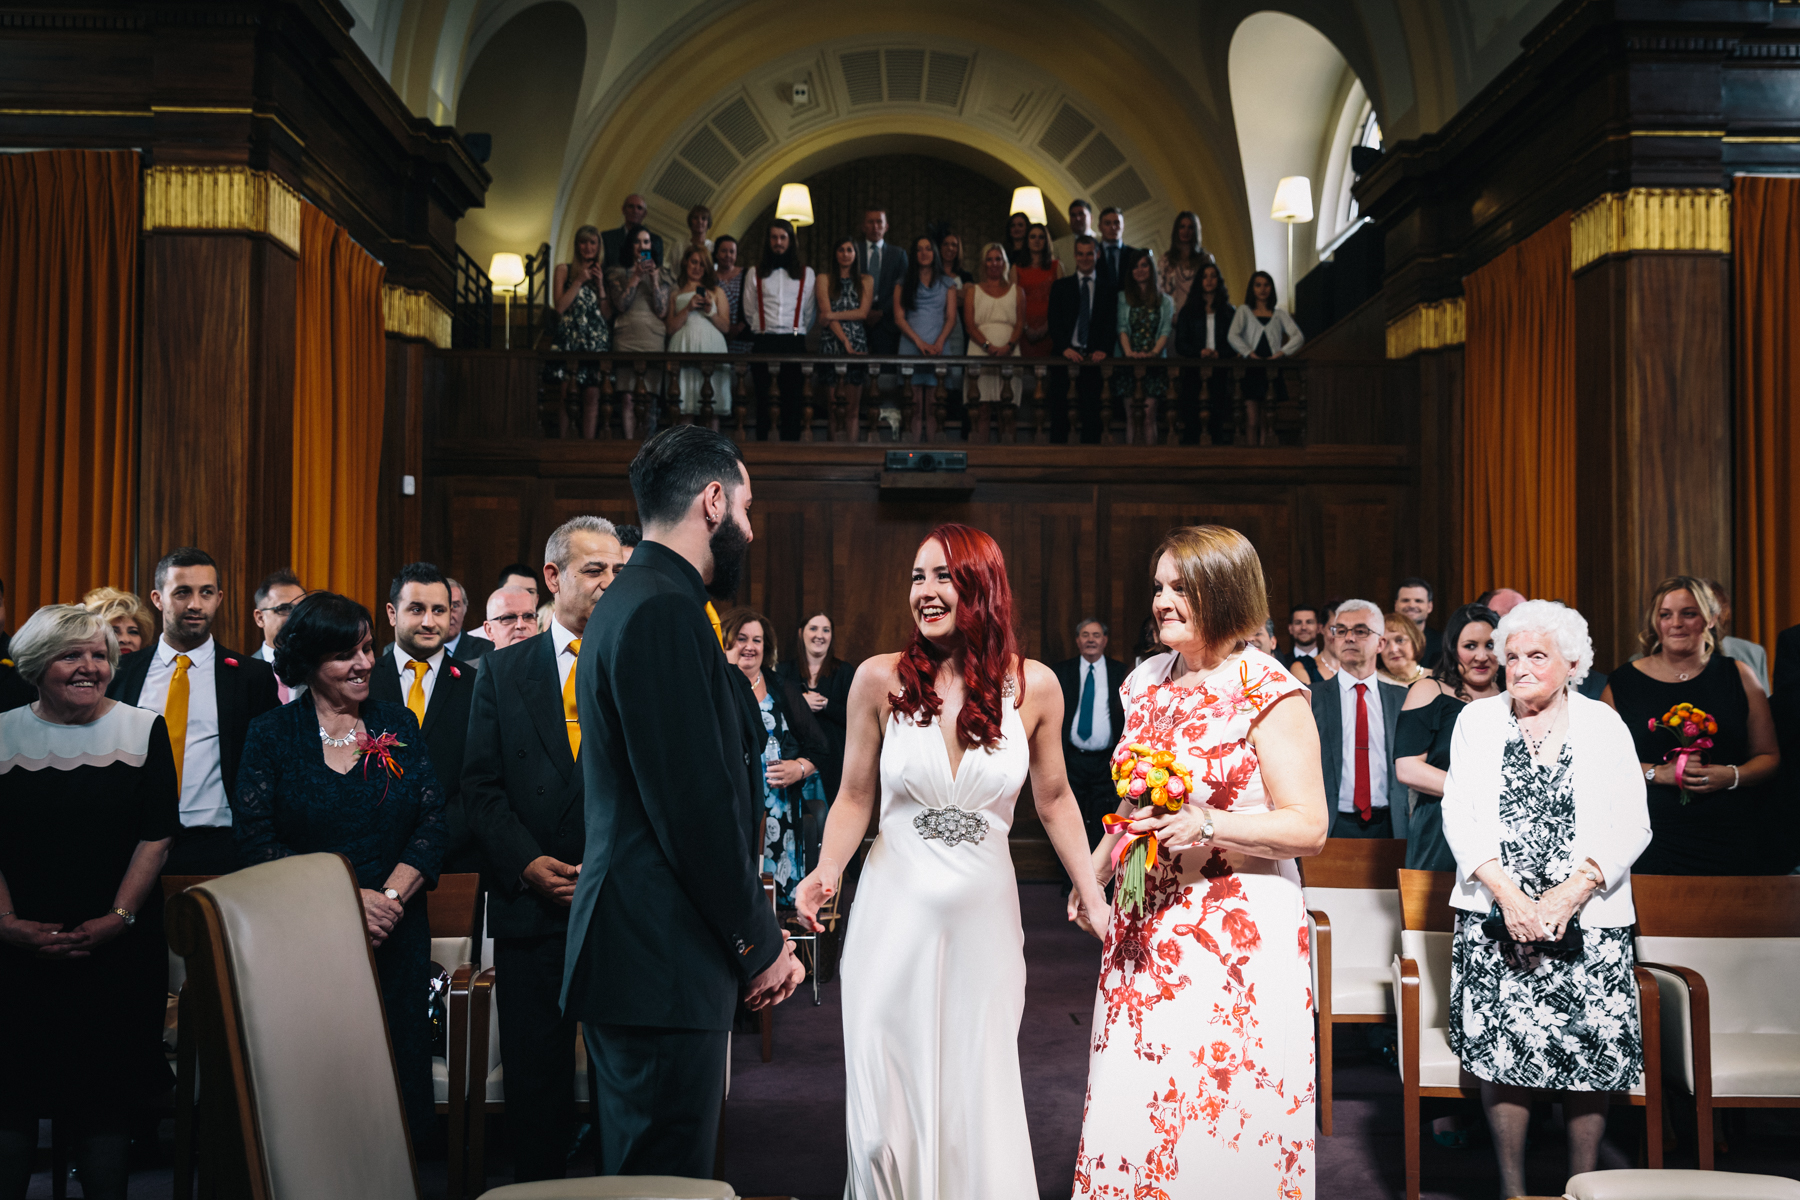 STOKE NEWINGTON TOWN HALL WEDDING-15